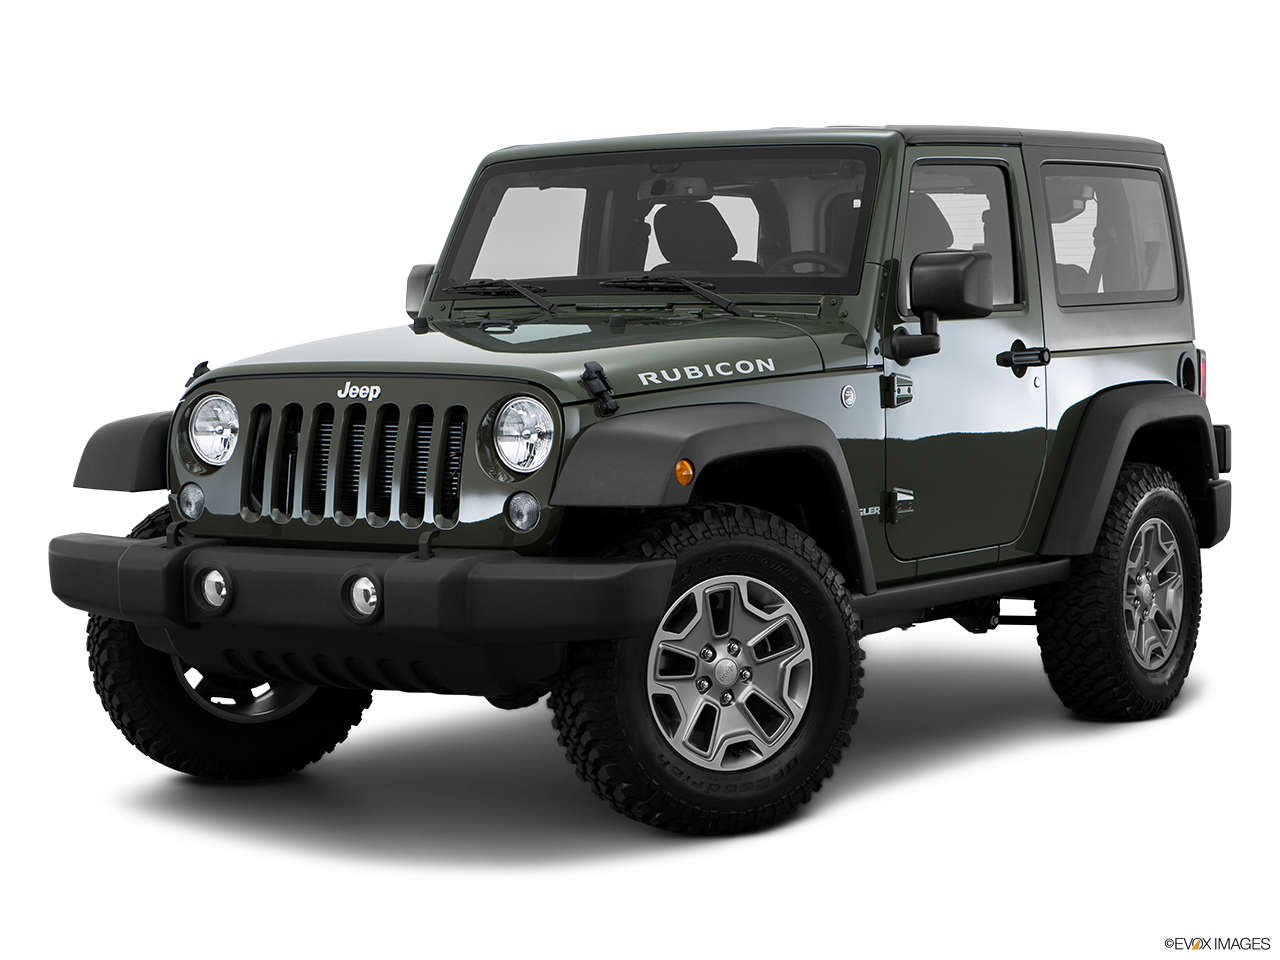 Test Drive A 2016 Jeep Wrangler at Carl Burger Dodge Chrysler Jeep Ram World in La Mesa